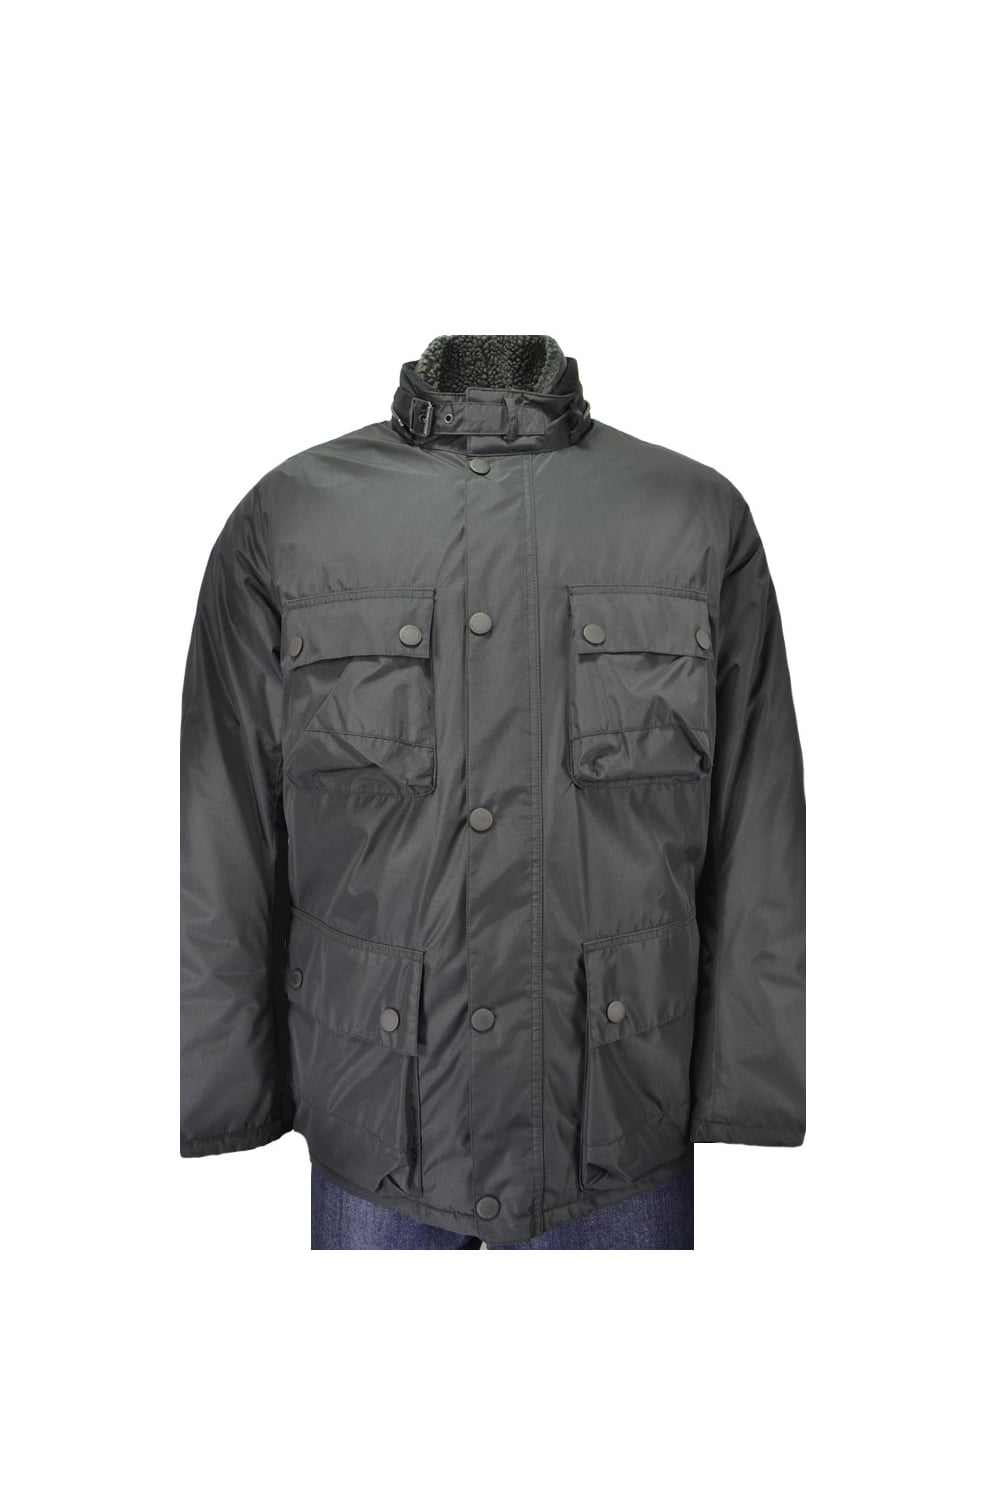 Barbour International Capacitor Jacket Clothing From